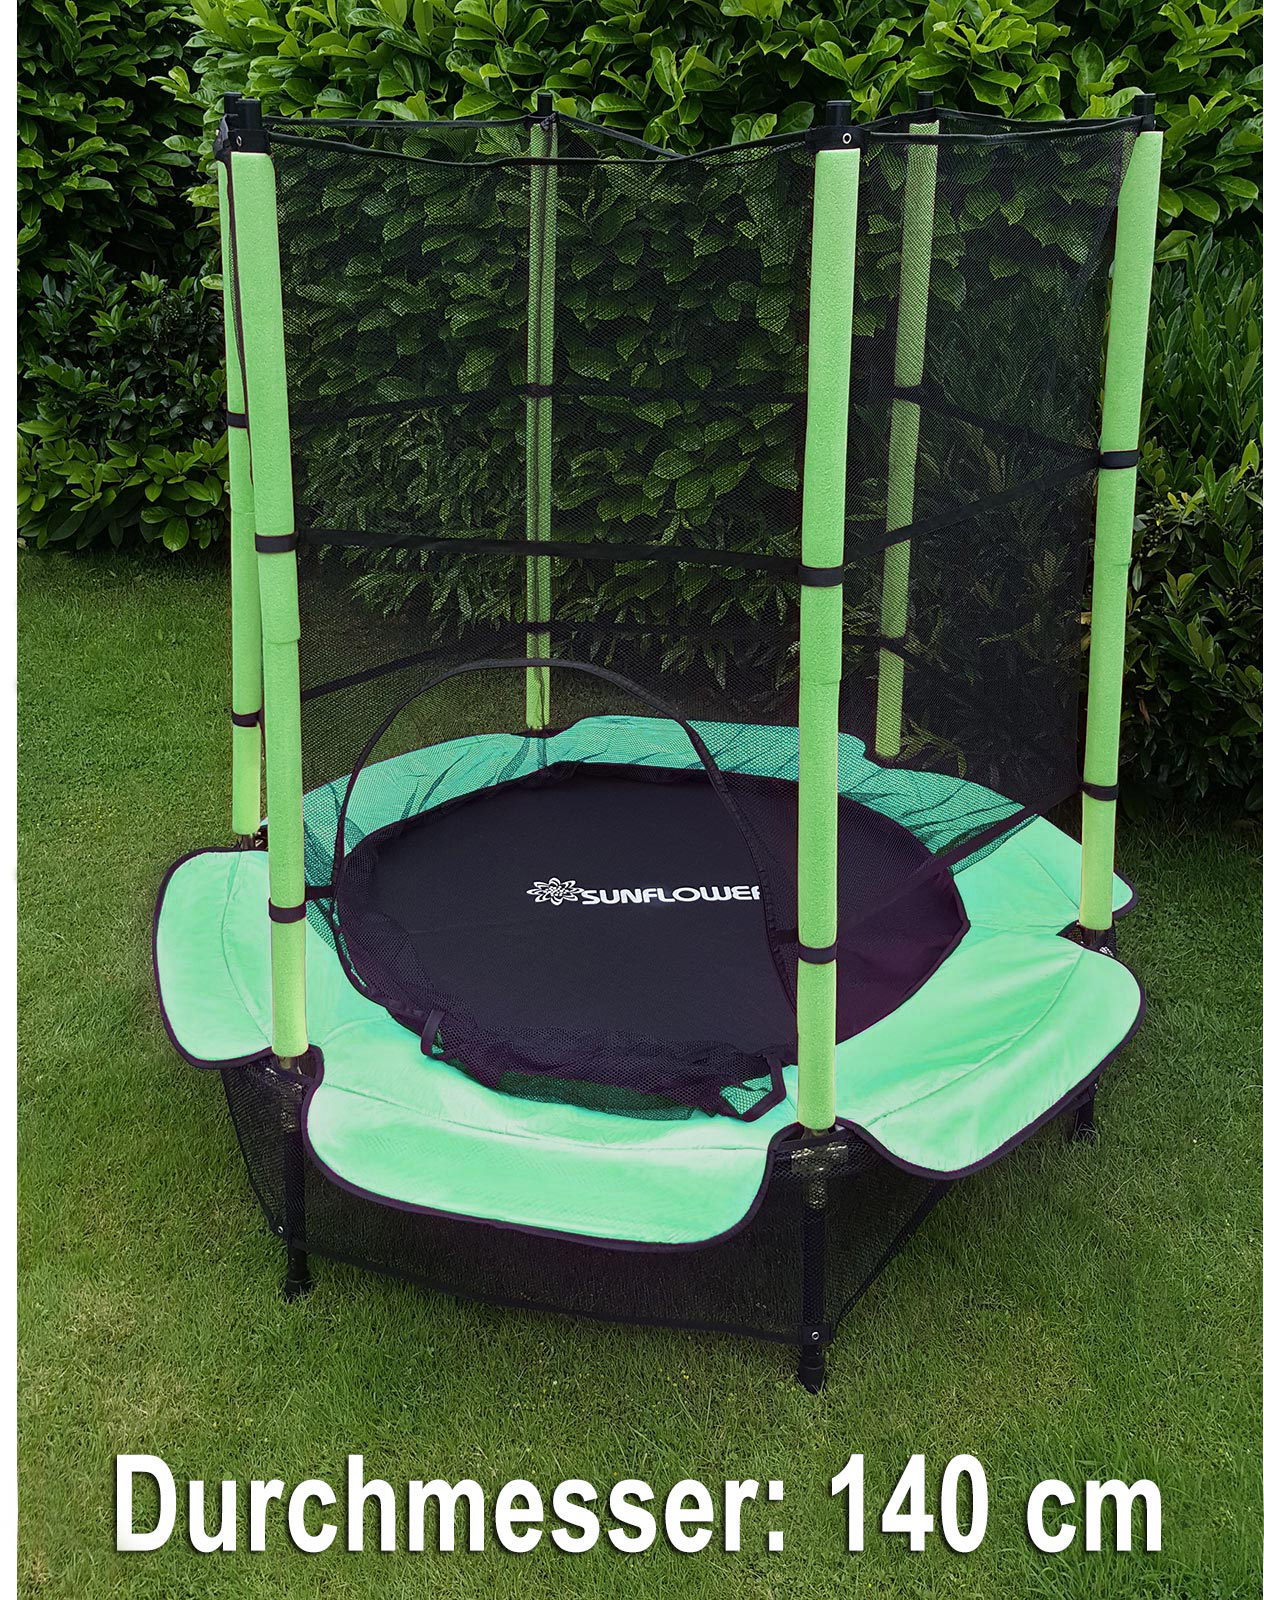 trampolin 140 cm komplett mit sicherheitsnetz gr n ebay. Black Bedroom Furniture Sets. Home Design Ideas